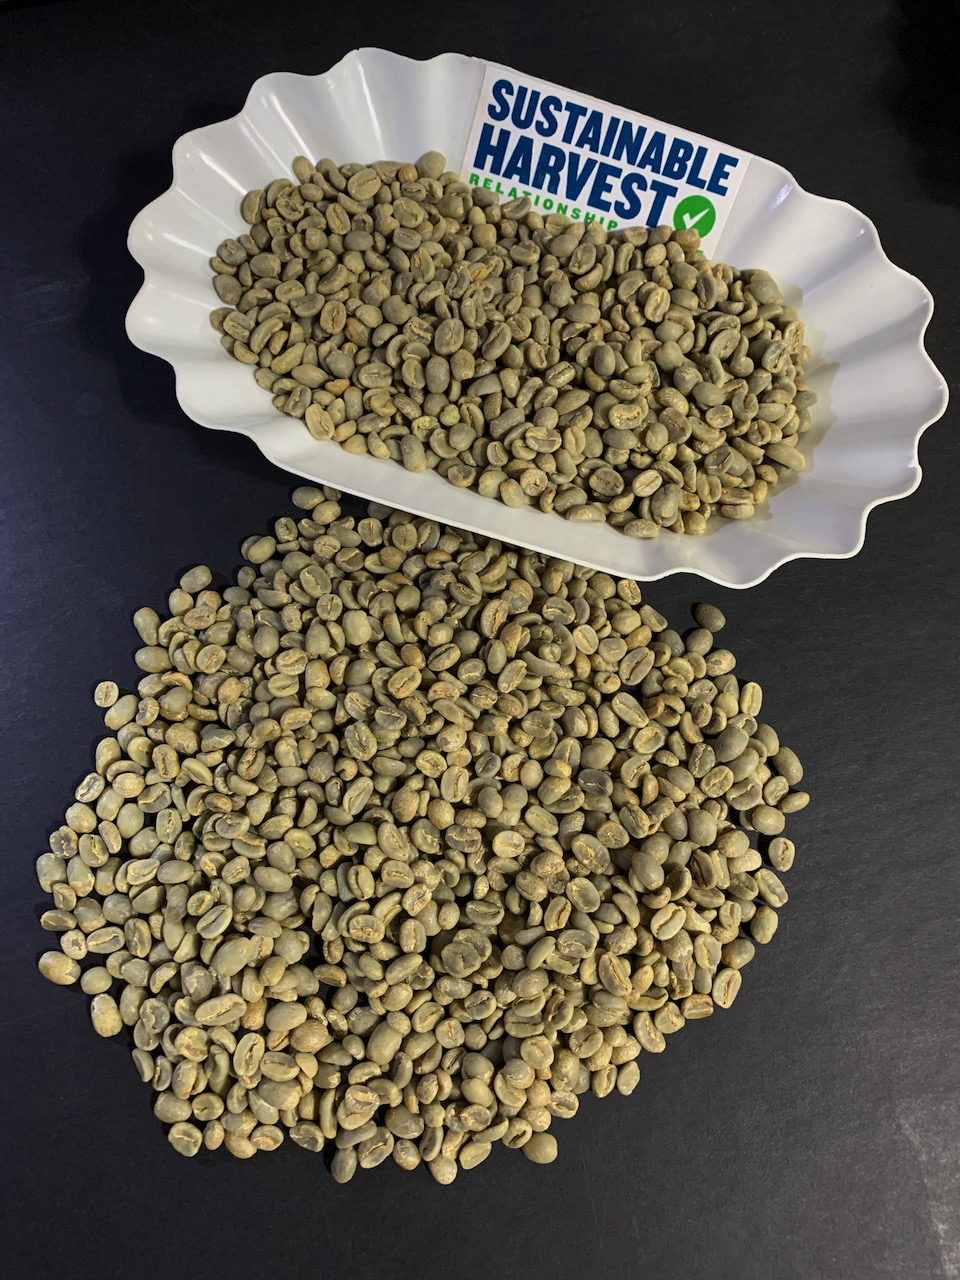 Green coffee cupping tray